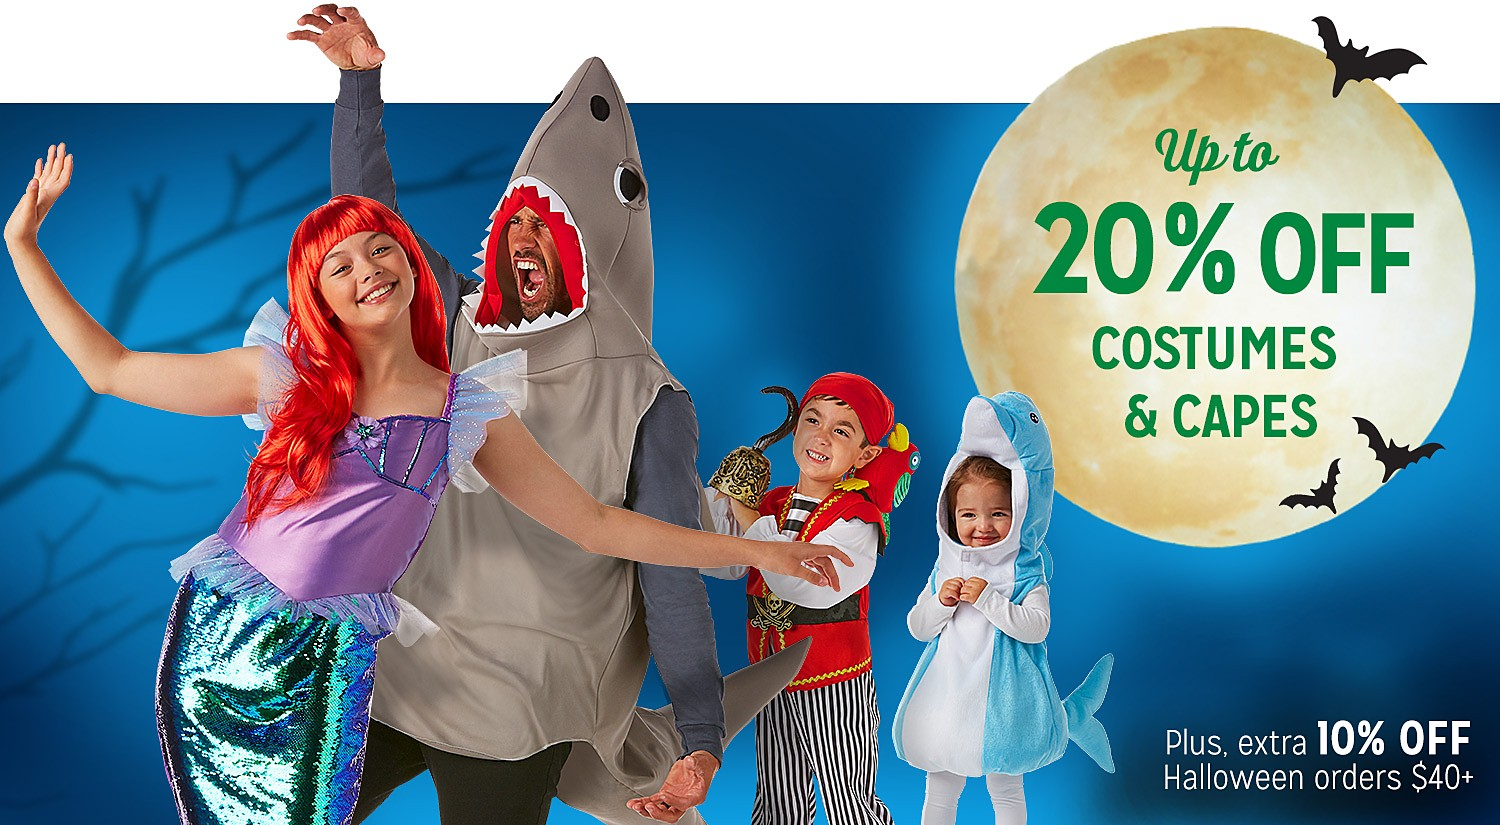 Up to 20% off Costumes & Capes